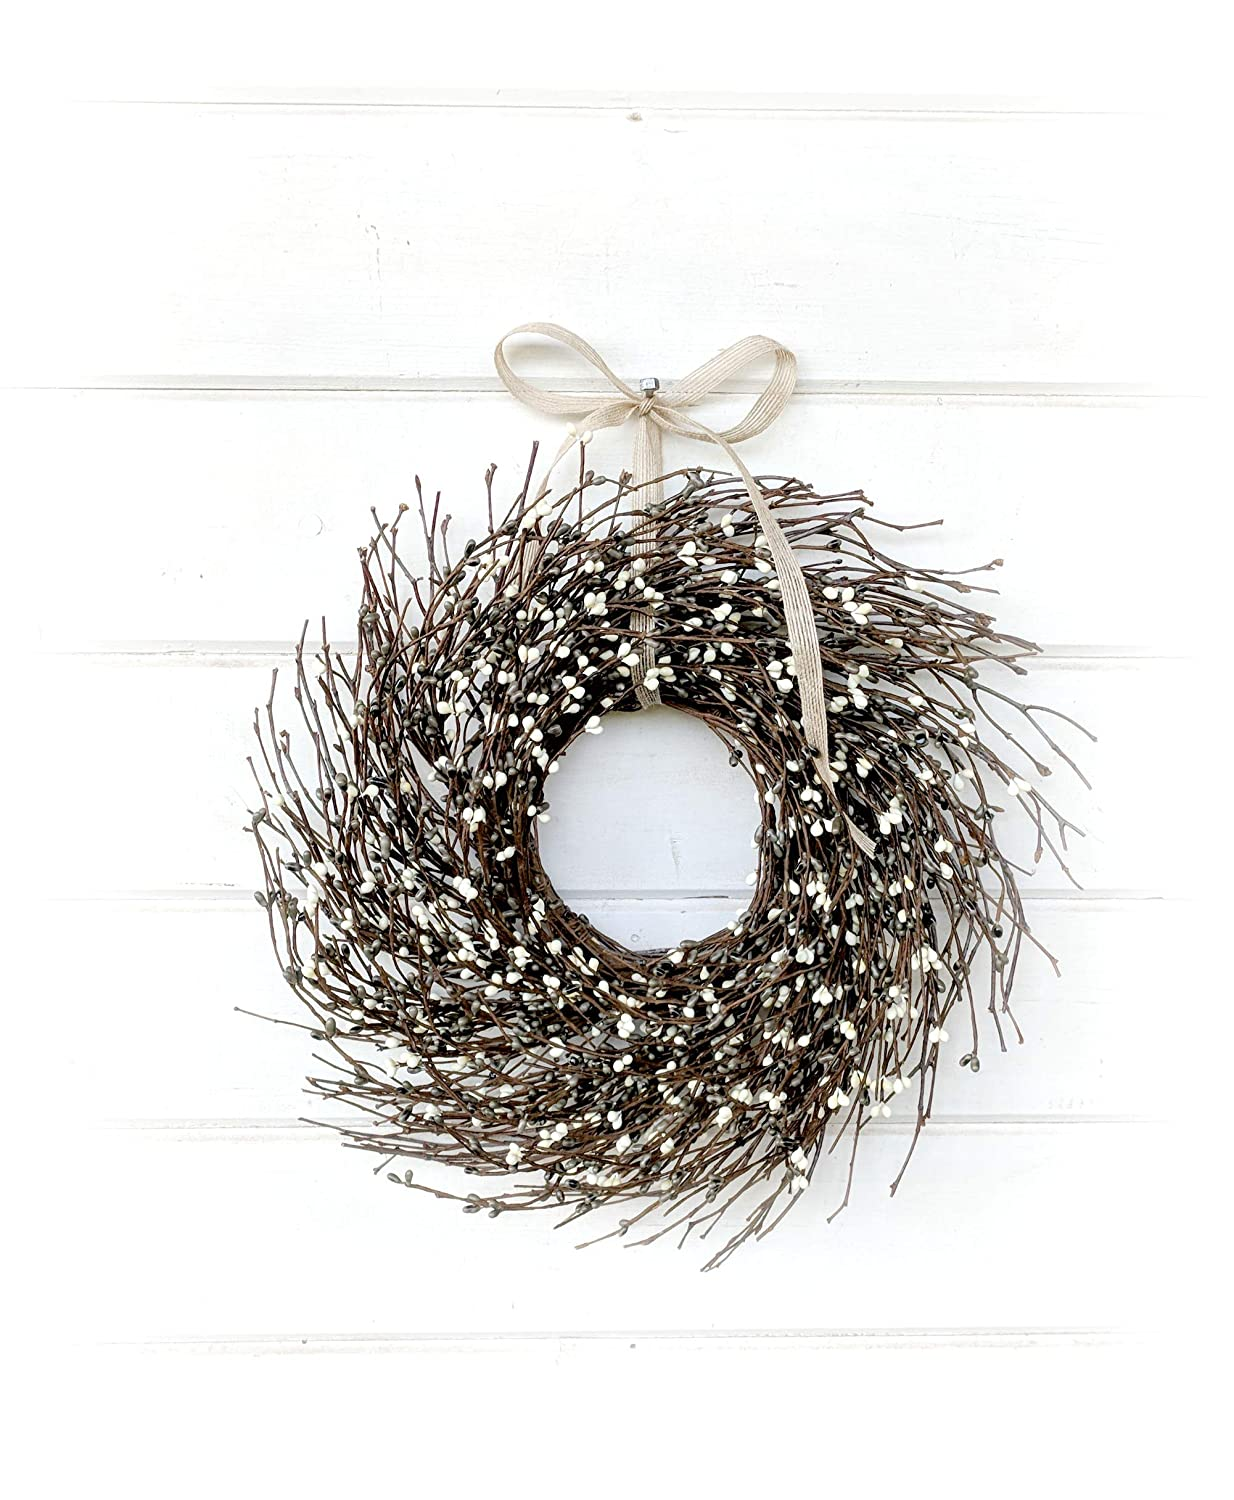 Mini Wreath-Window Wreath-Spring Wreath-Summer Wreath-Gray& Cream Wreath-Twig Wreath, Farmhouse Wreath, Farmhouse Decor, Gift, Door Wreath, Housewarming Gift, Coastal Beach Decor